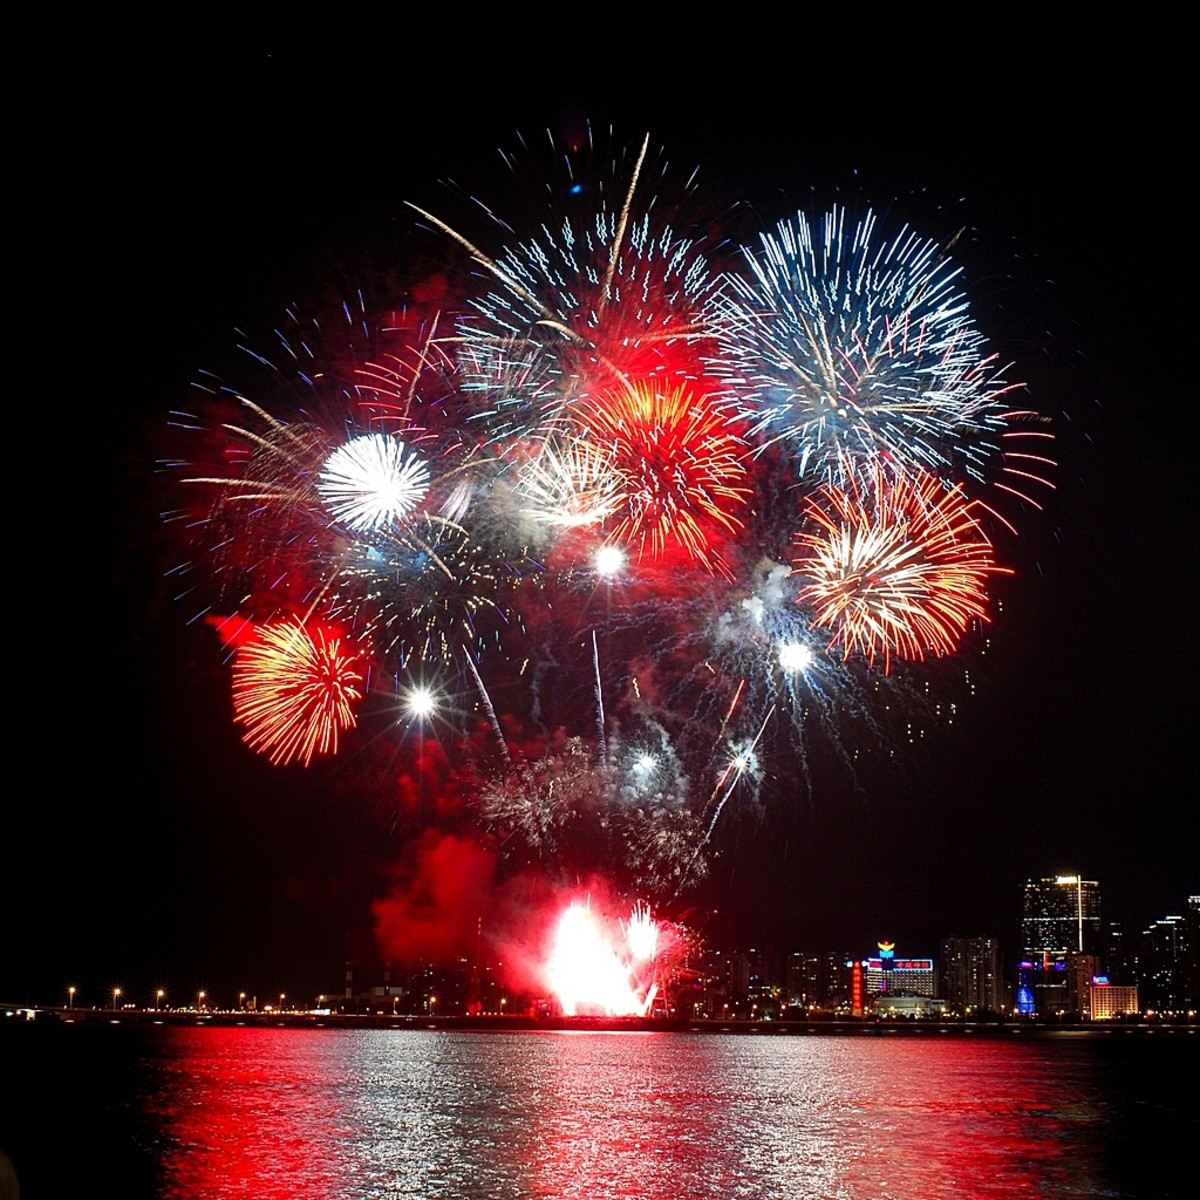 Fireworks that are typically seen during Philippine New Year celebrations